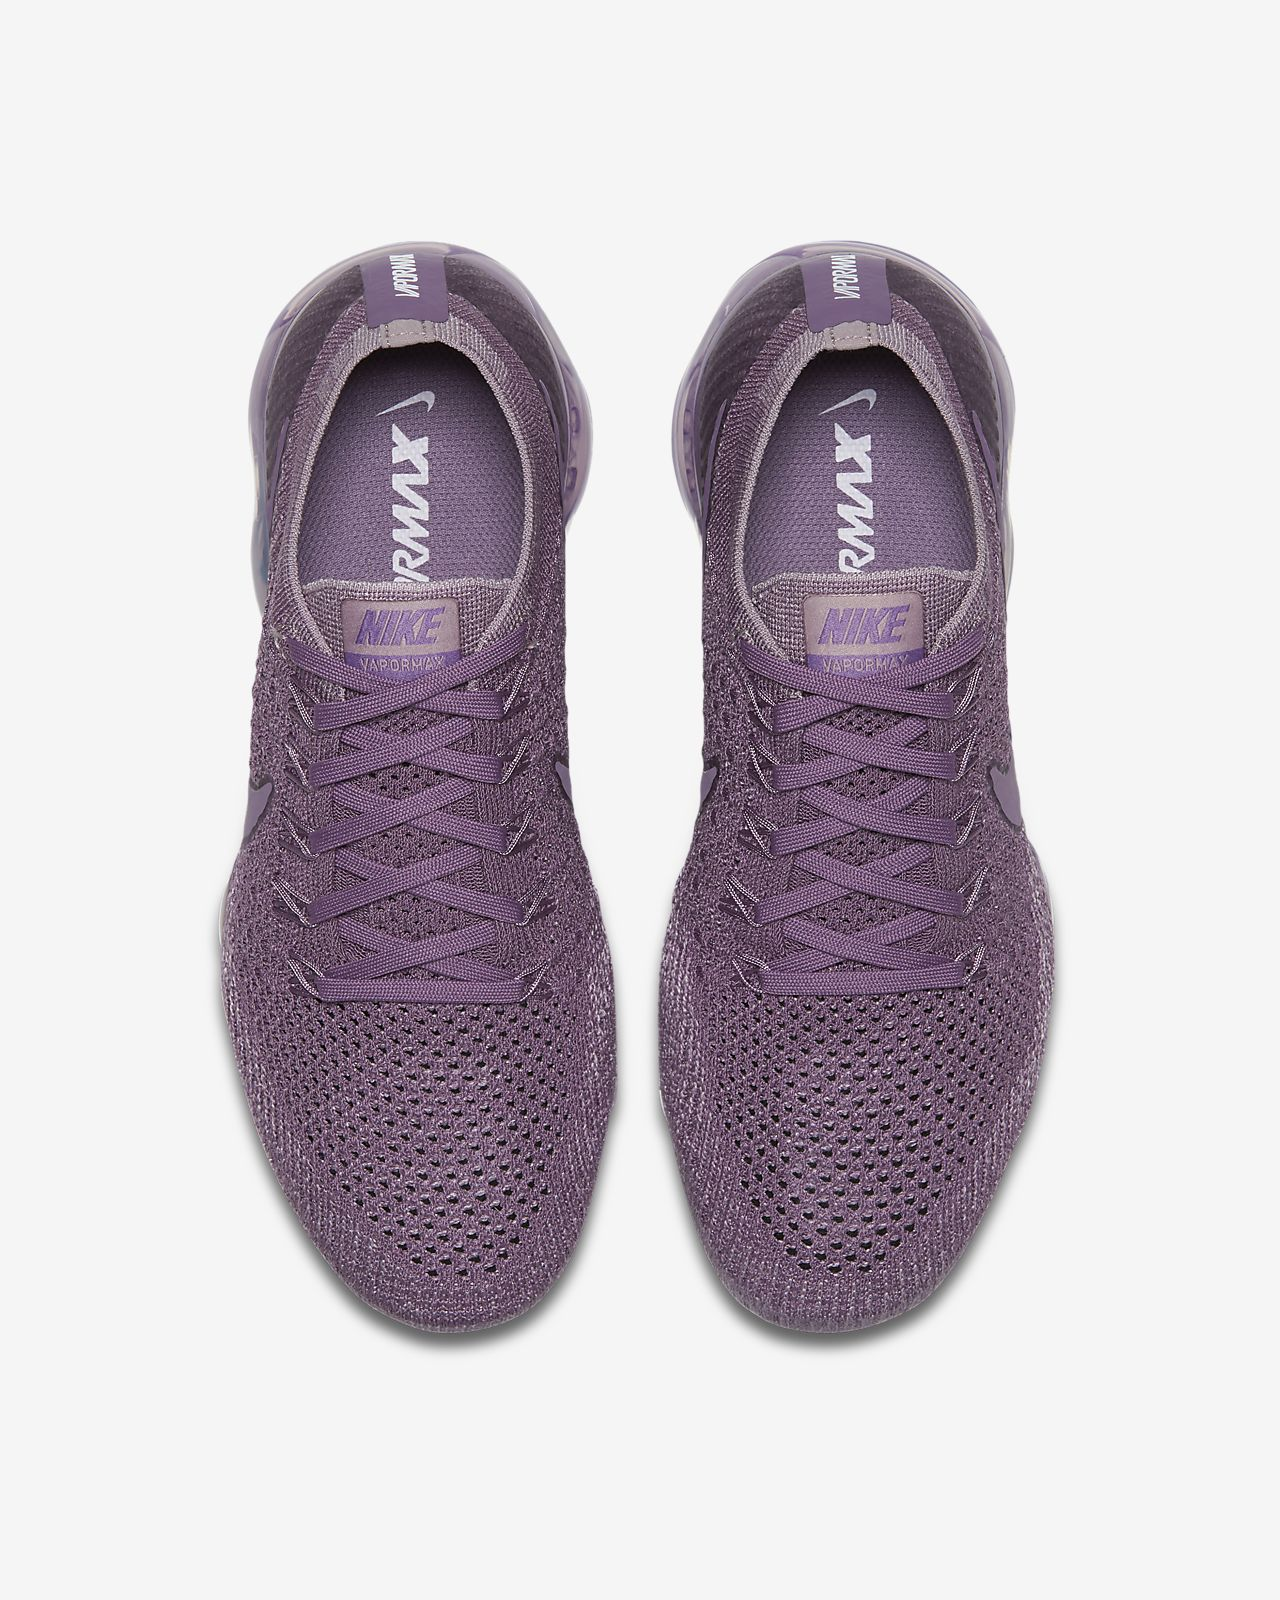 59d2d82217 Nike Air VaporMax Flyknit Women's Running Shoe. Nike.com NO